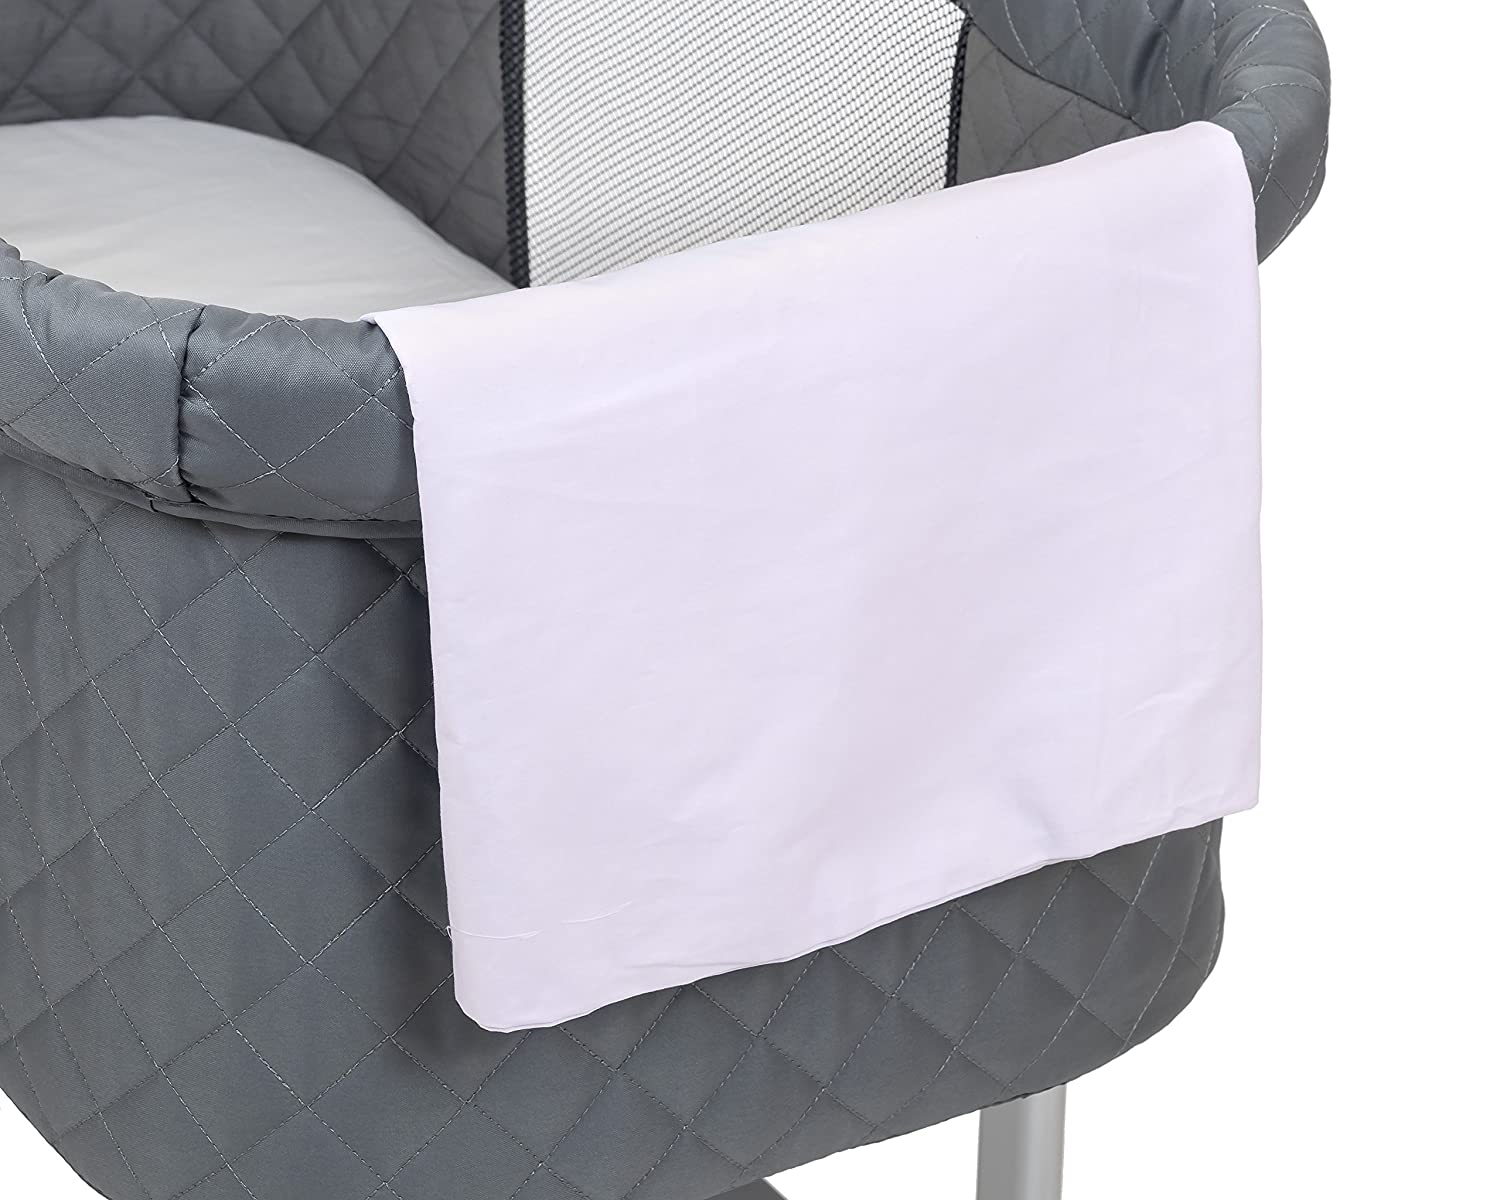 Green Frog Lily Pod Bassinet Replacement Sheets (White, 2 Cotton)